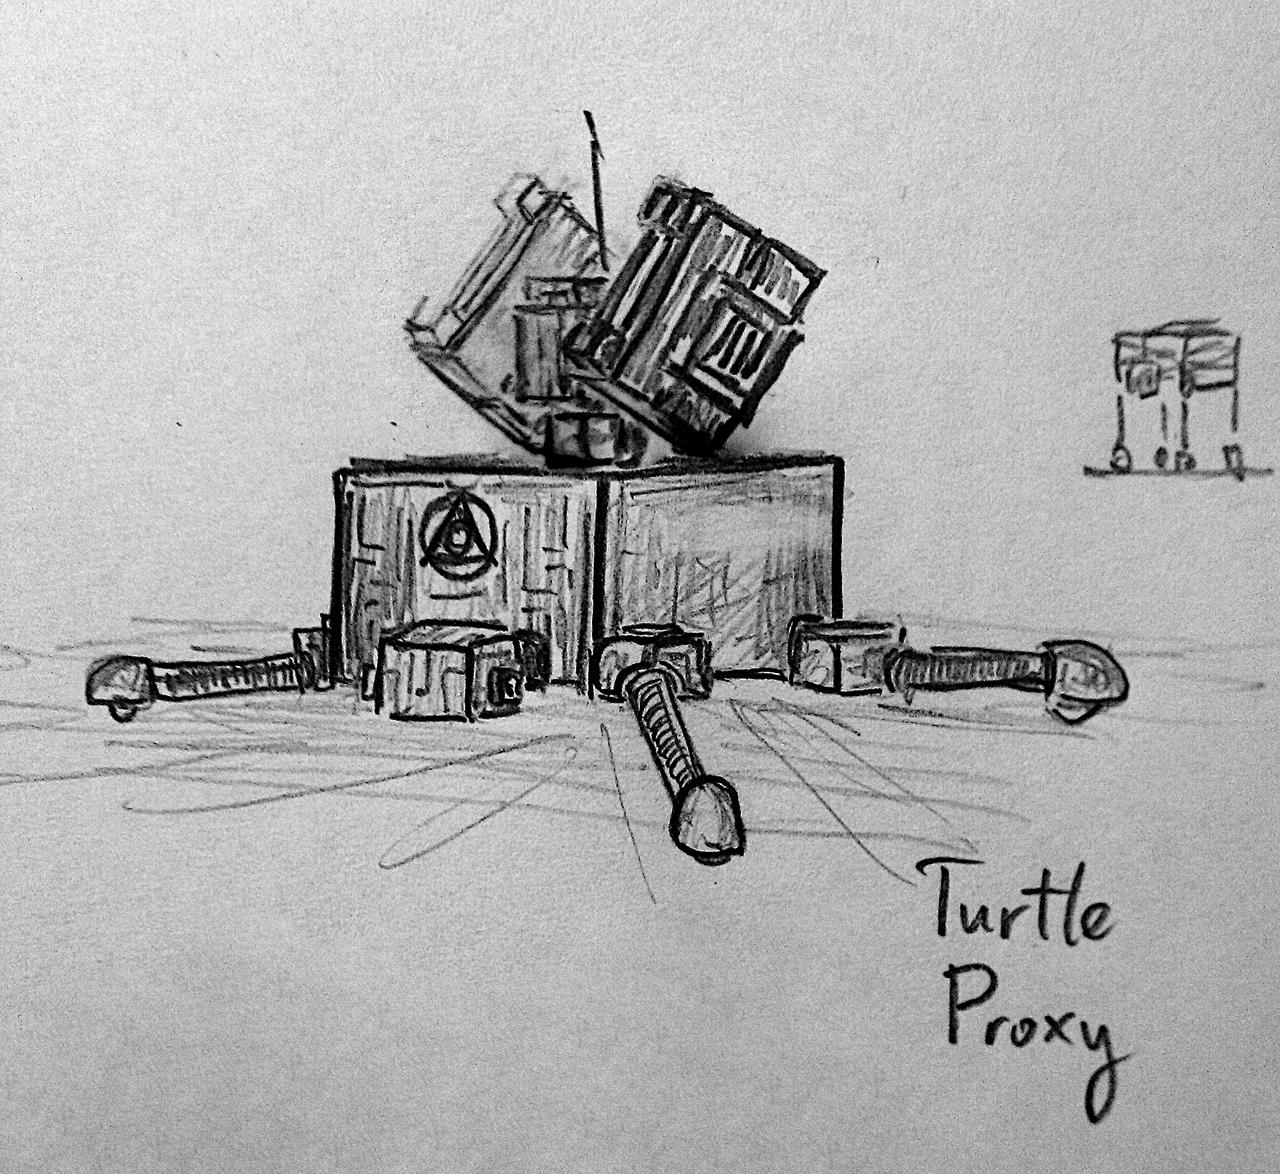 turtle_proxy_launcher_module_by_huginthe